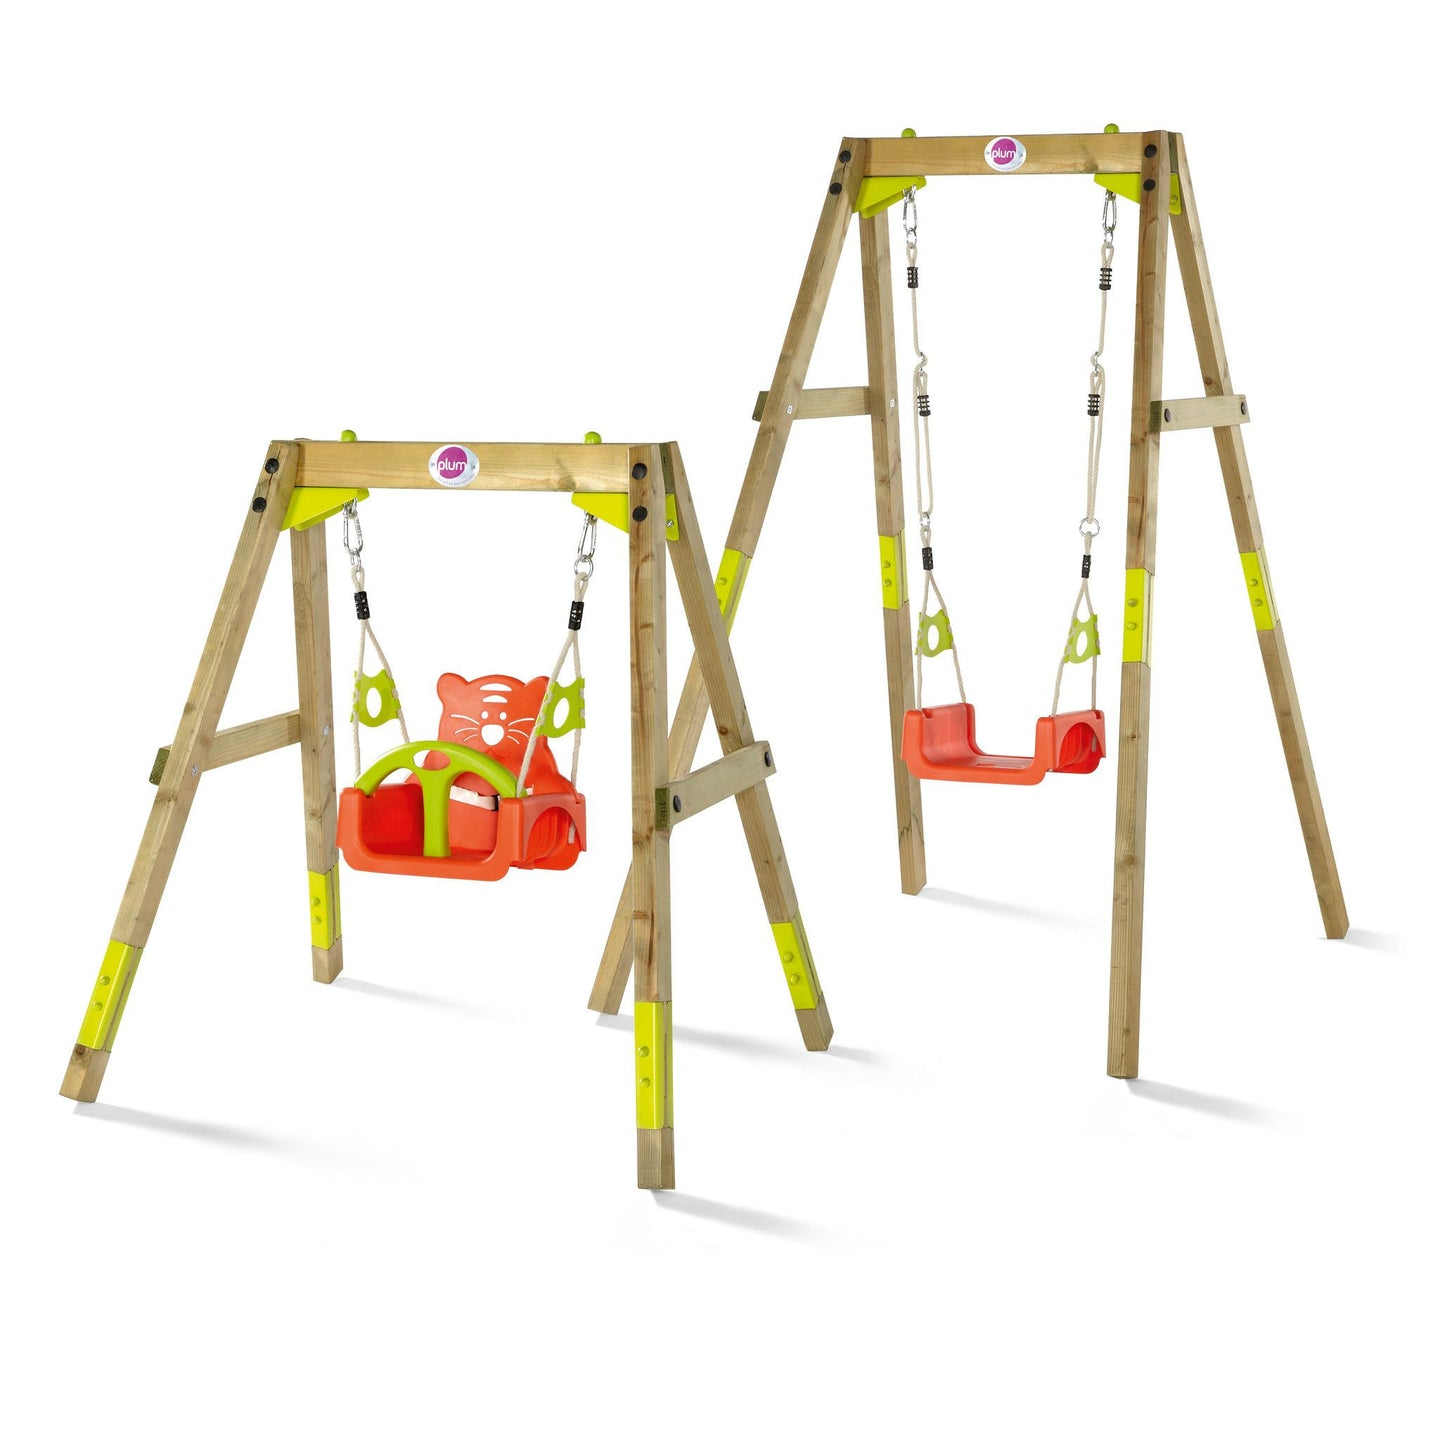 Plum Wooden Adjustable Growing Swing Set - Backyard Fun and Play!